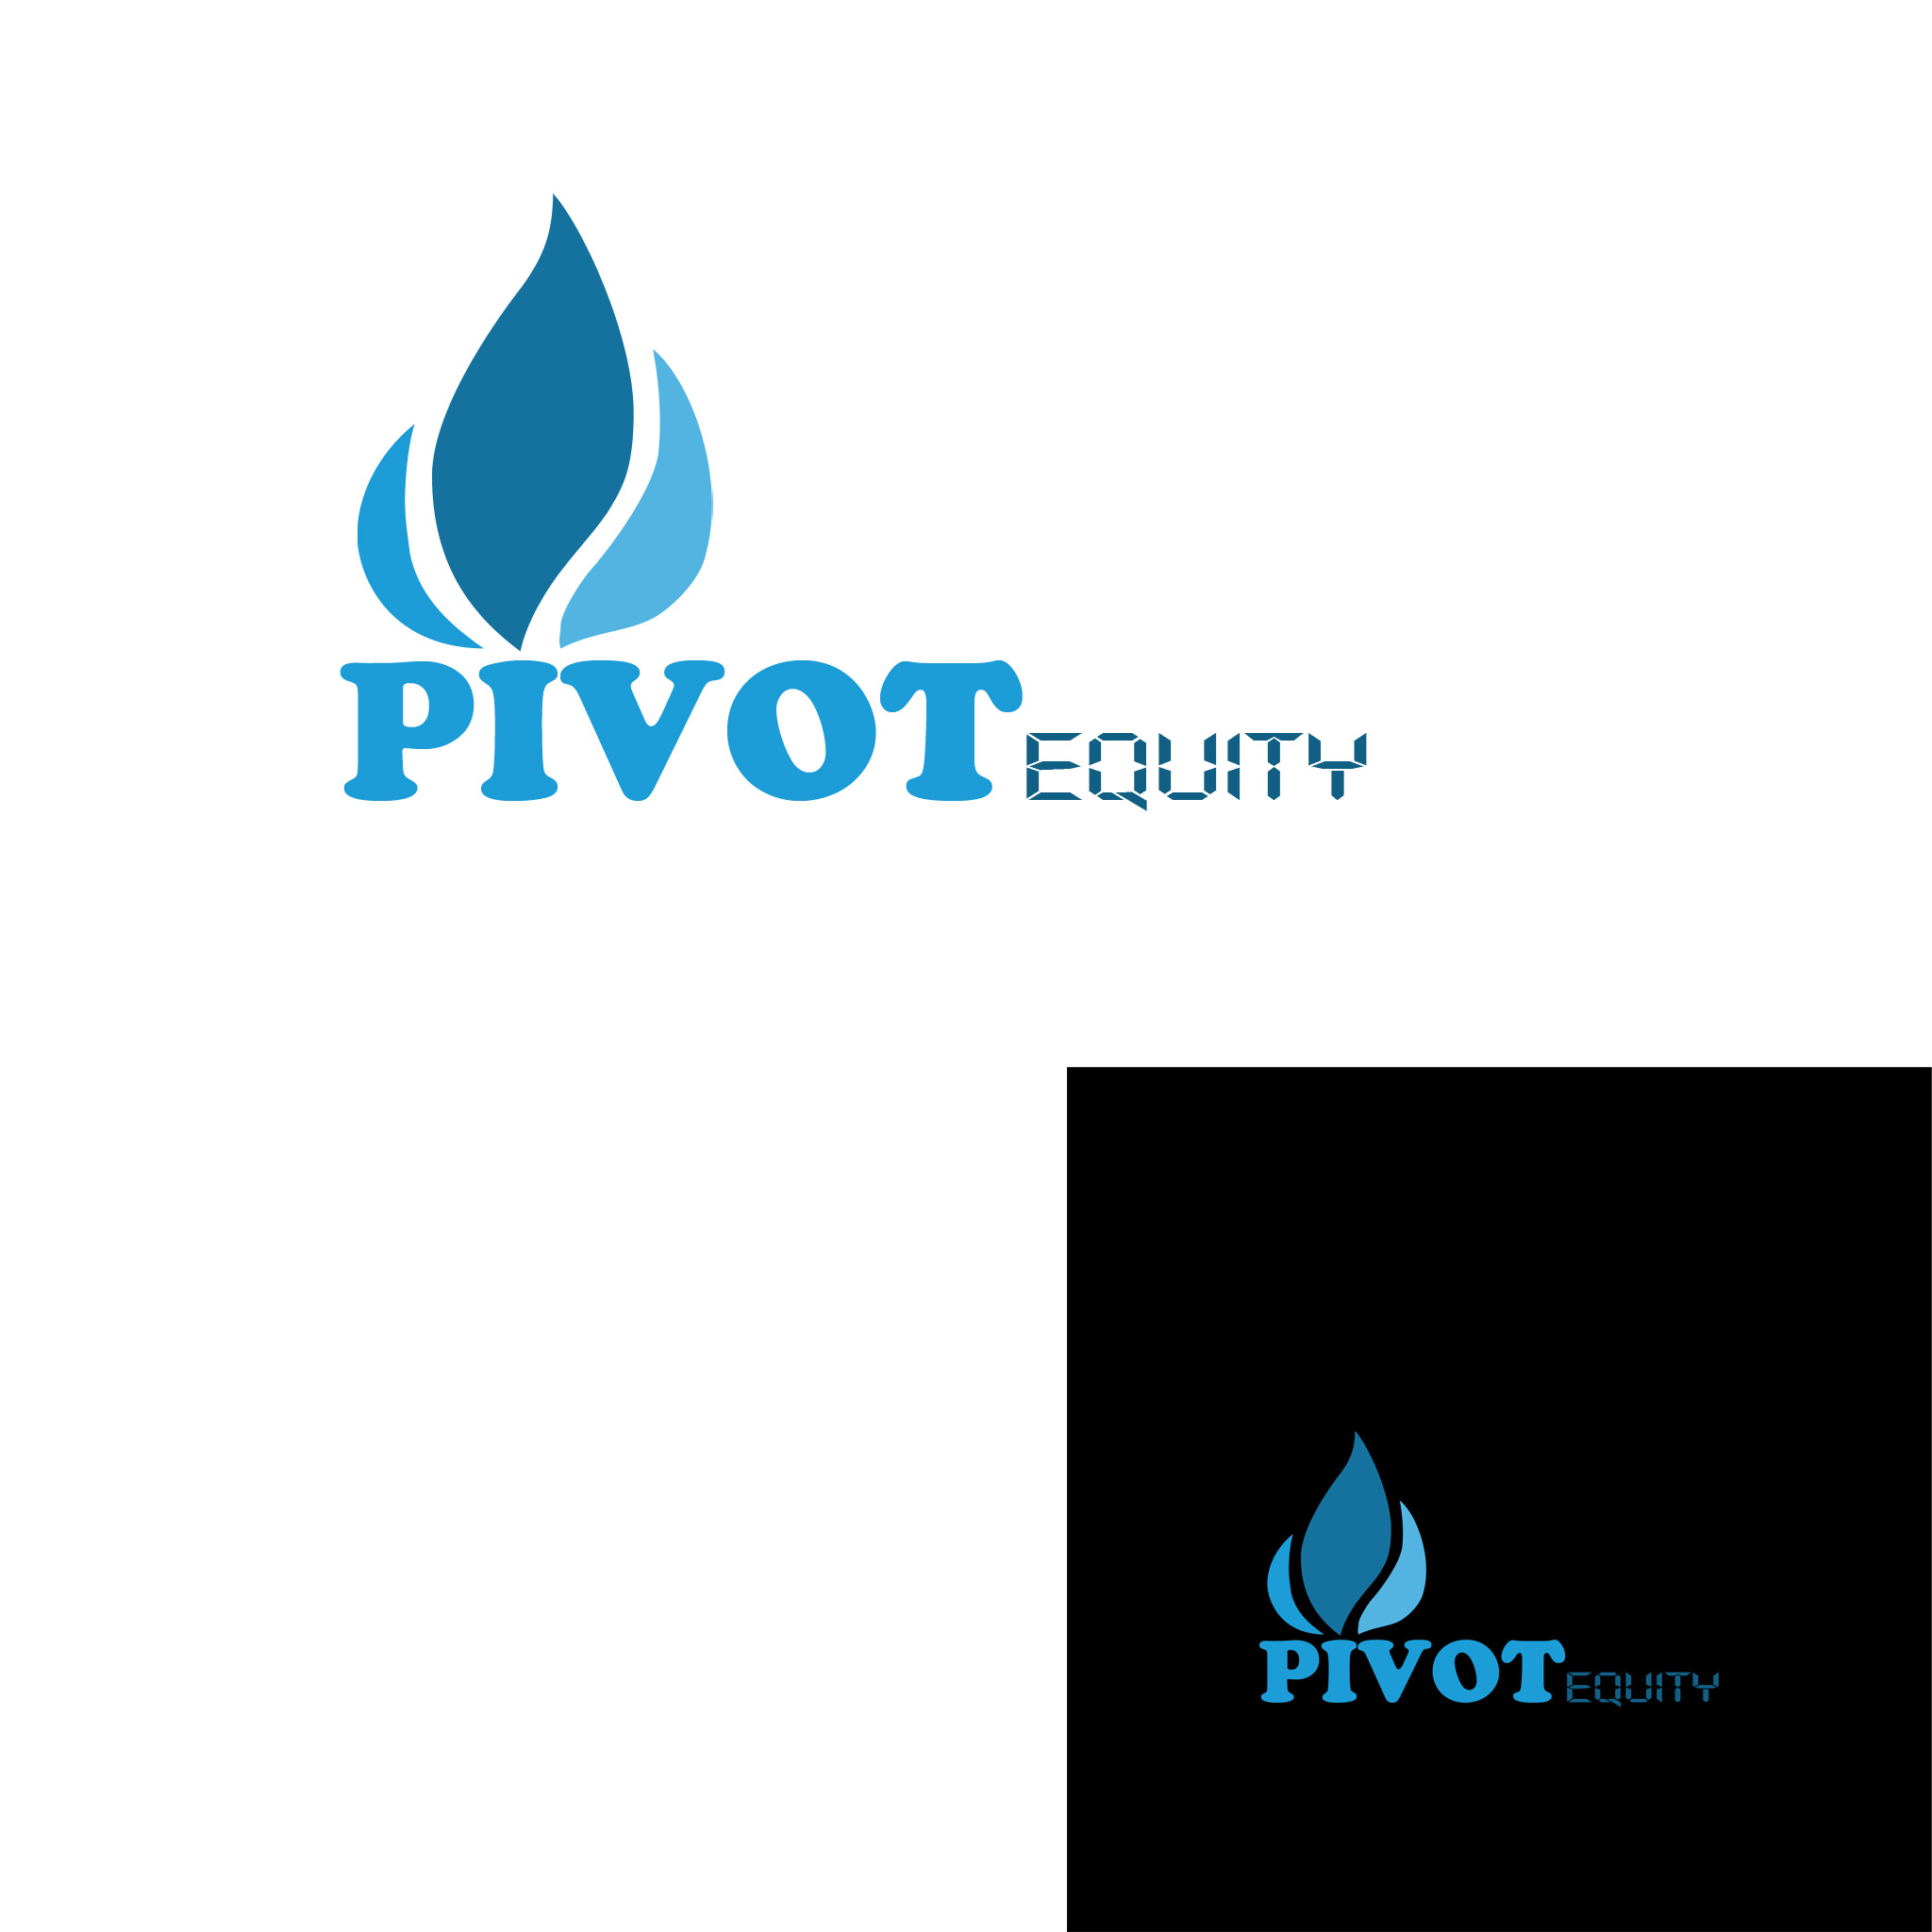 Logo Design by Marco Paulo Jamero - Entry No. 65 in the Logo Design Contest Unique Logo Design Wanted for Pivot Equity Advisors.